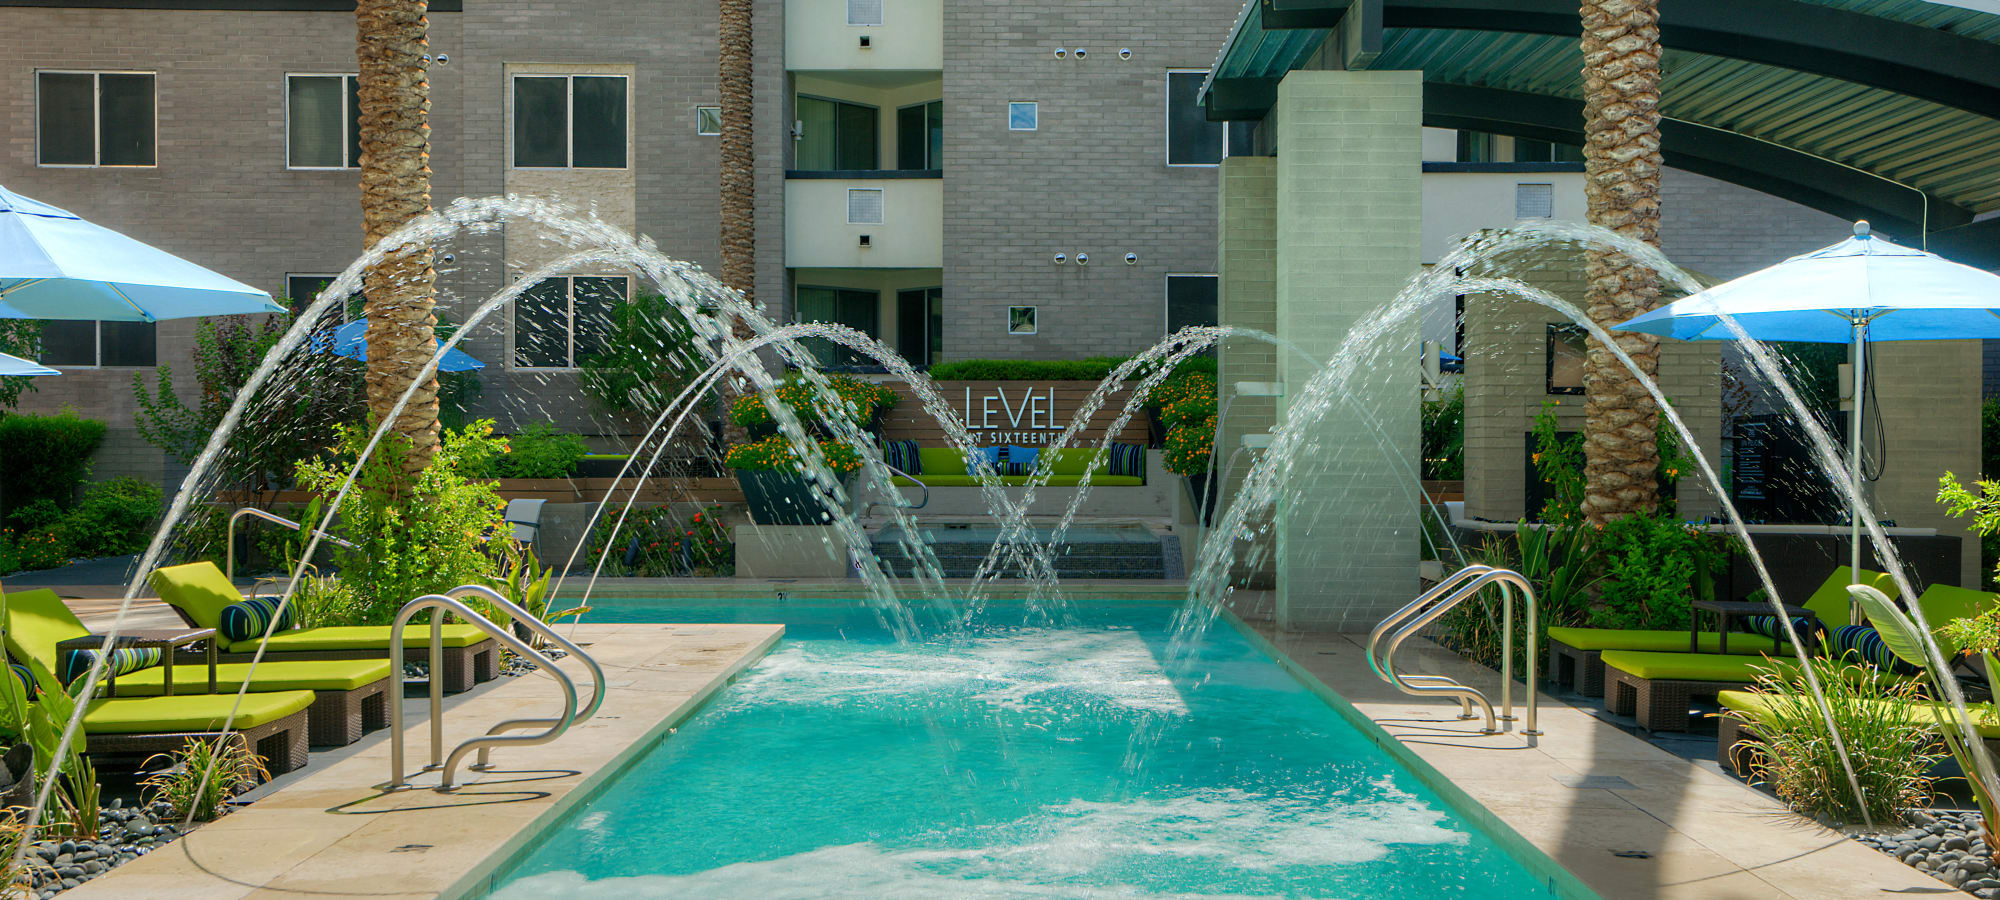 Fountains over the pool at Level at Sixteenth in Phoenix, Arizona